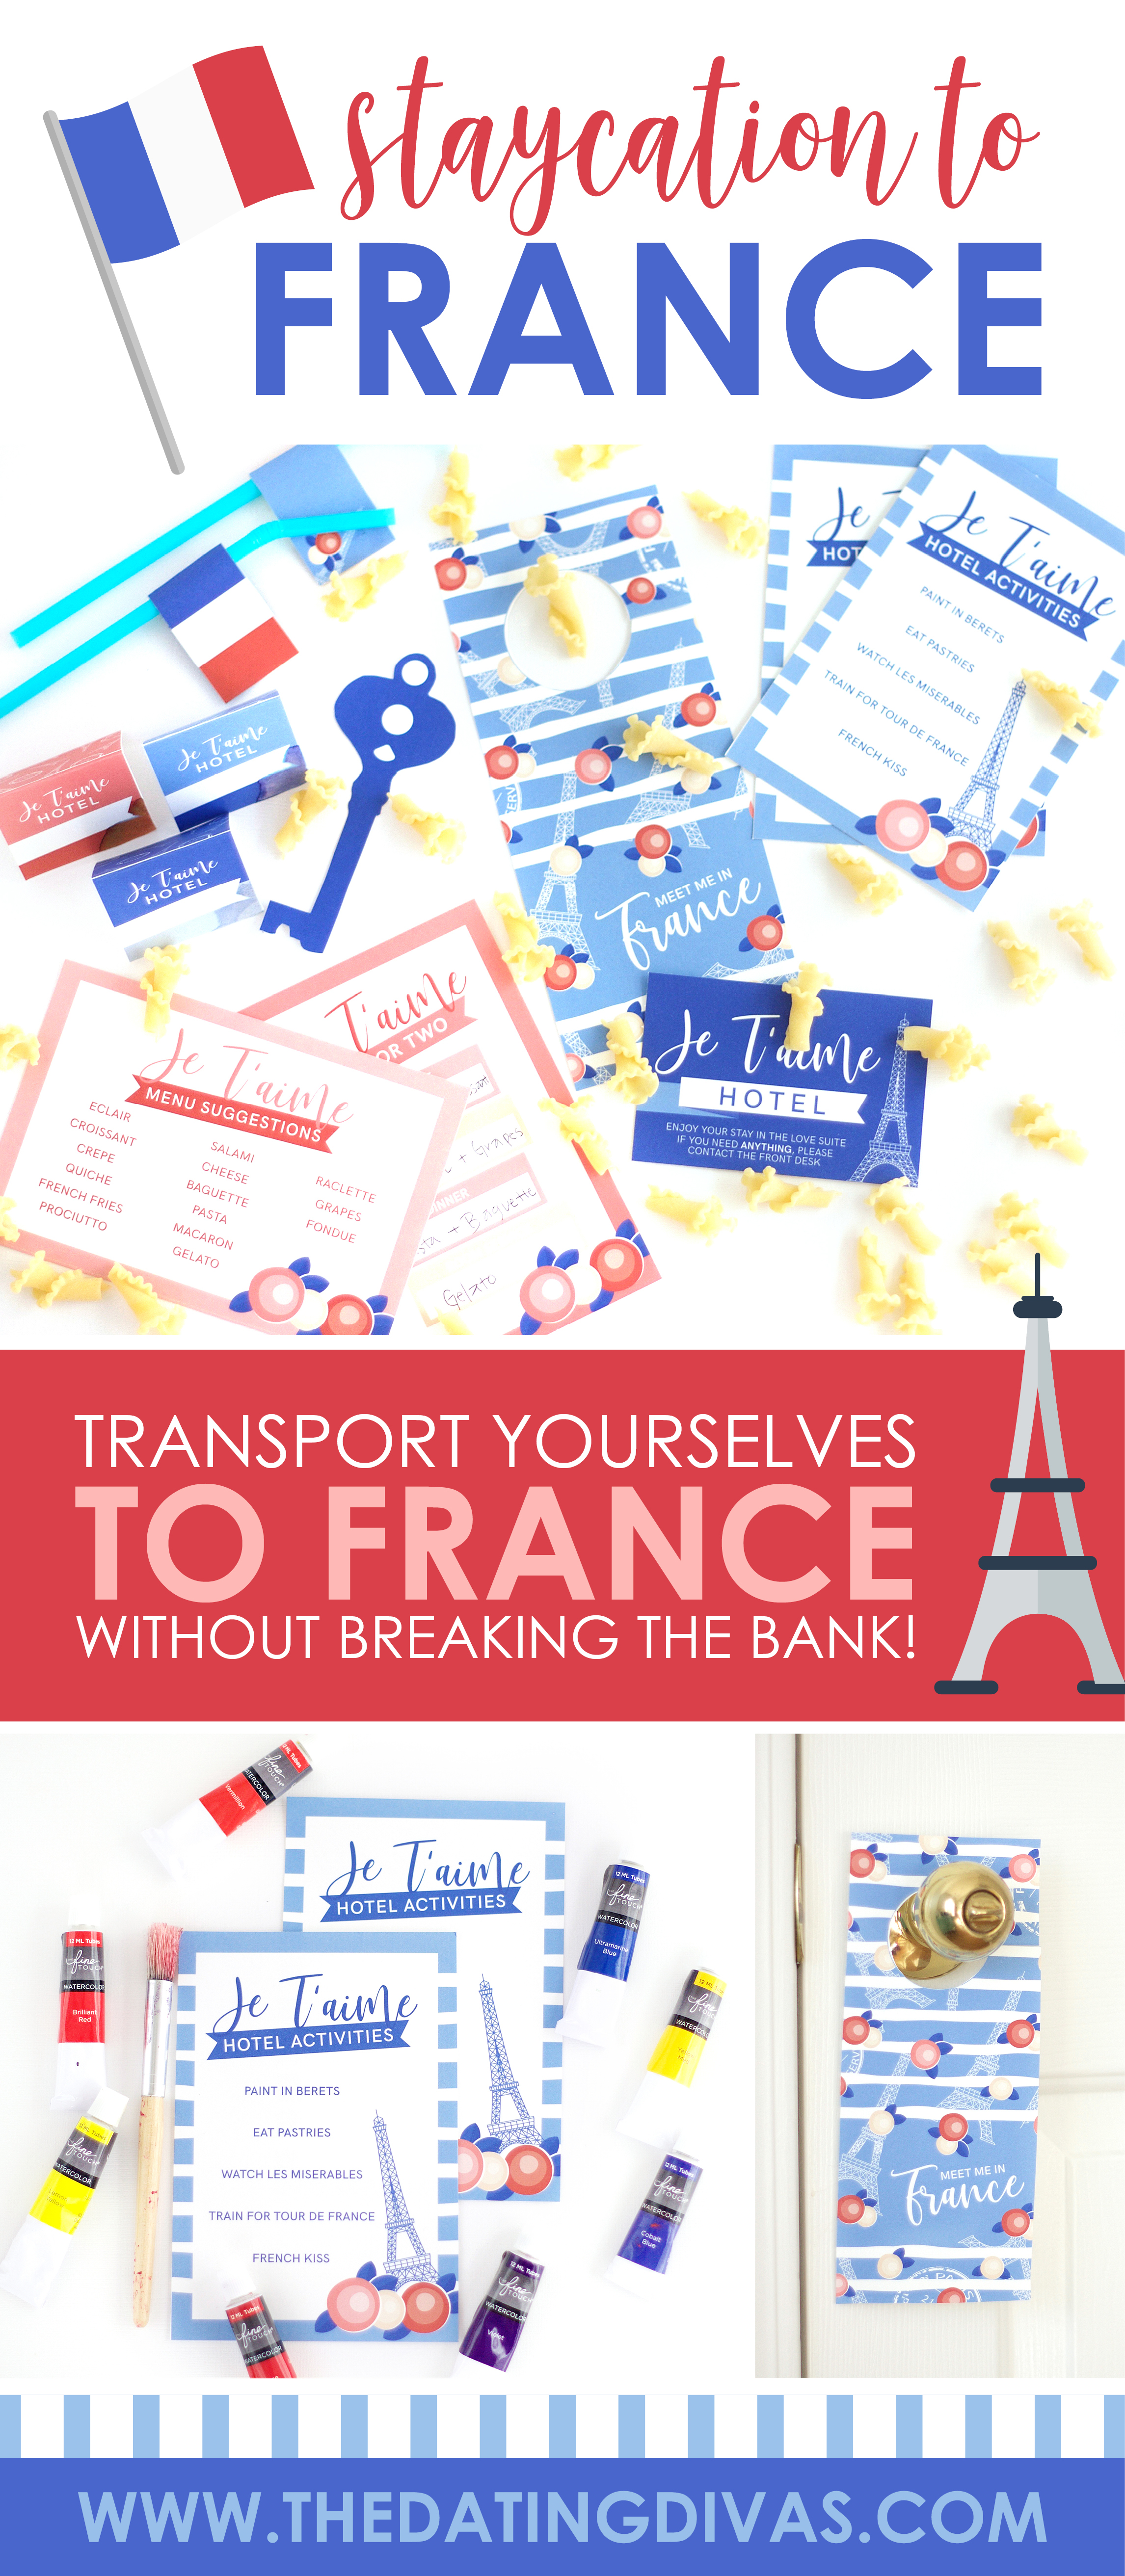 Travel to France TONIGHT! Transport yourselves with this fun, themed staycation! #staycationideas #staycation